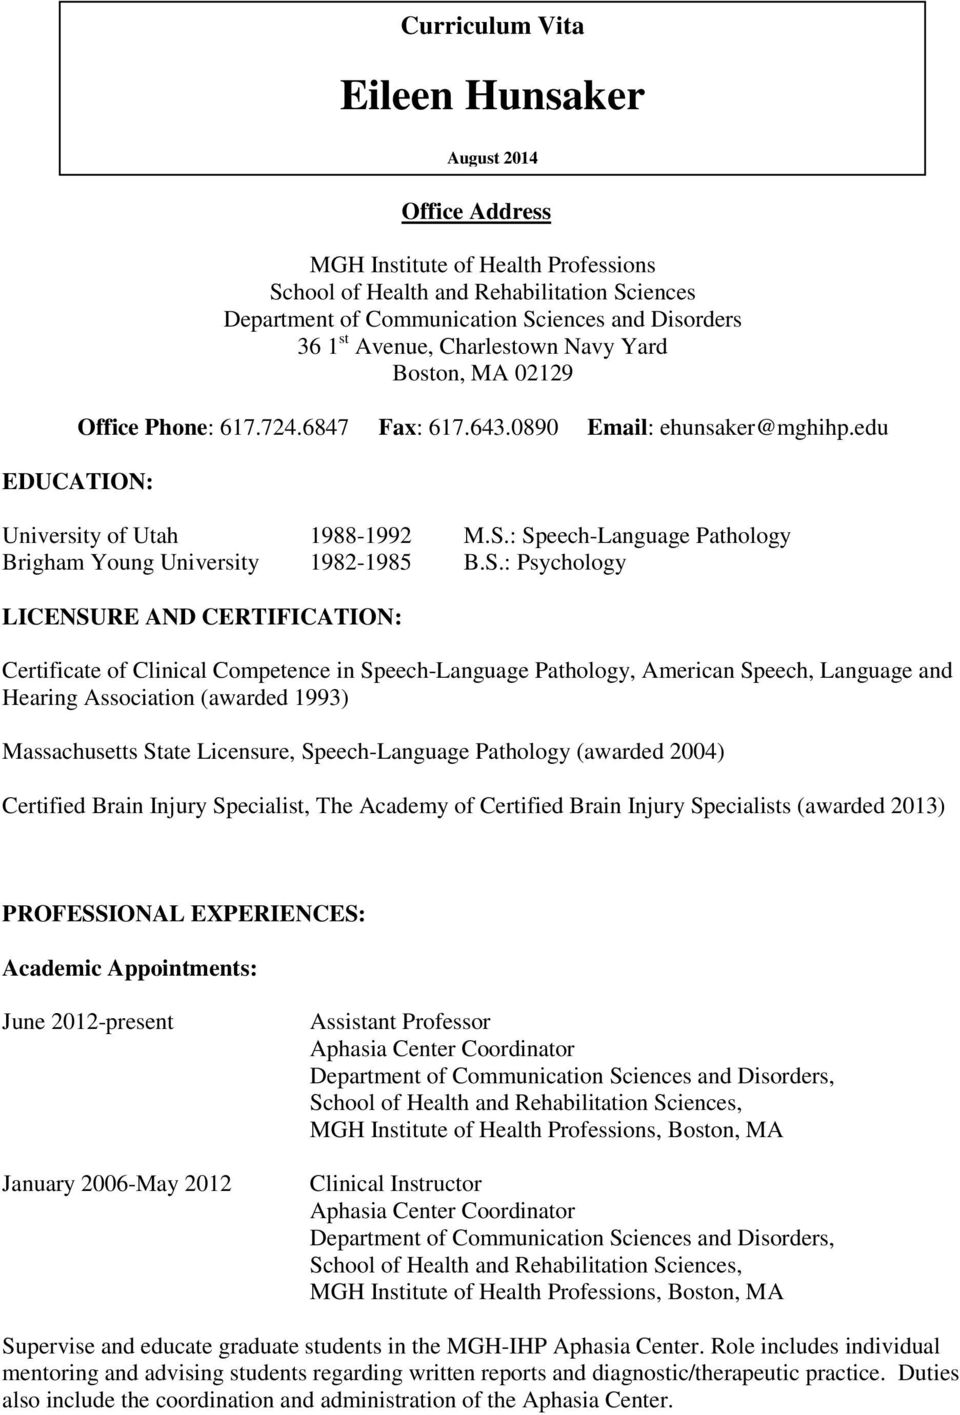 : Speech-Language Pathology Brigham Young University 1982-1985 B.S.: Psychology LICENSURE AND CERTIFICATION: Curriculum Vita Eileen Hunsaker August 2014 Certificate of Clinical Competence in